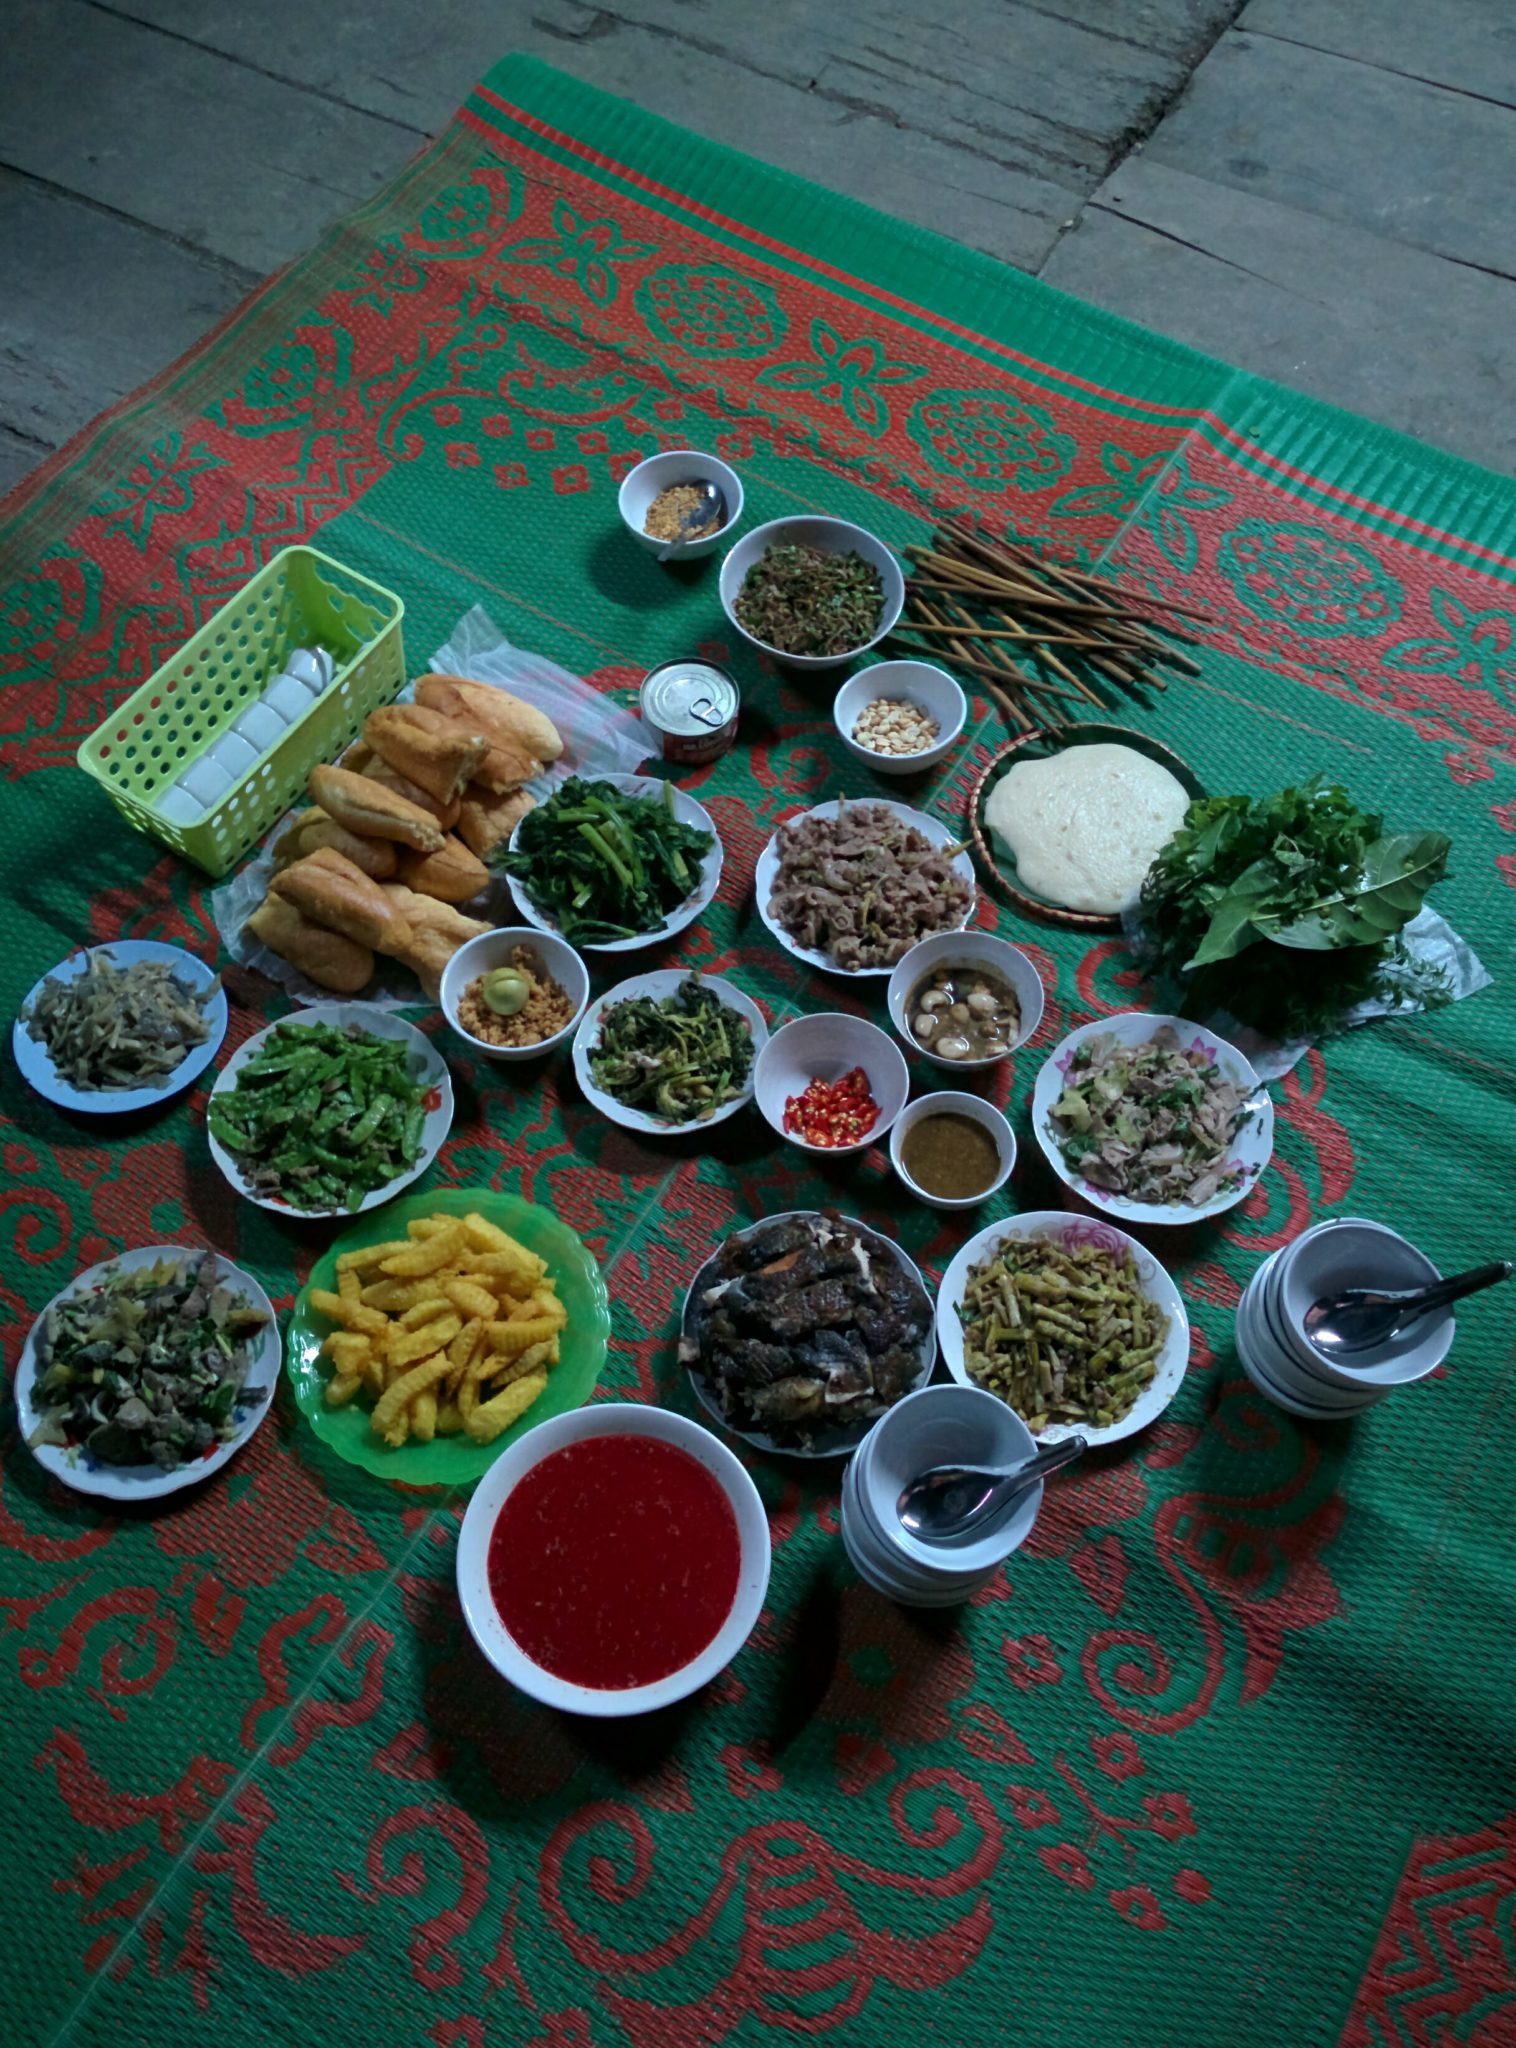 ha giang food - 10 local foods not to miss while in Vietnam